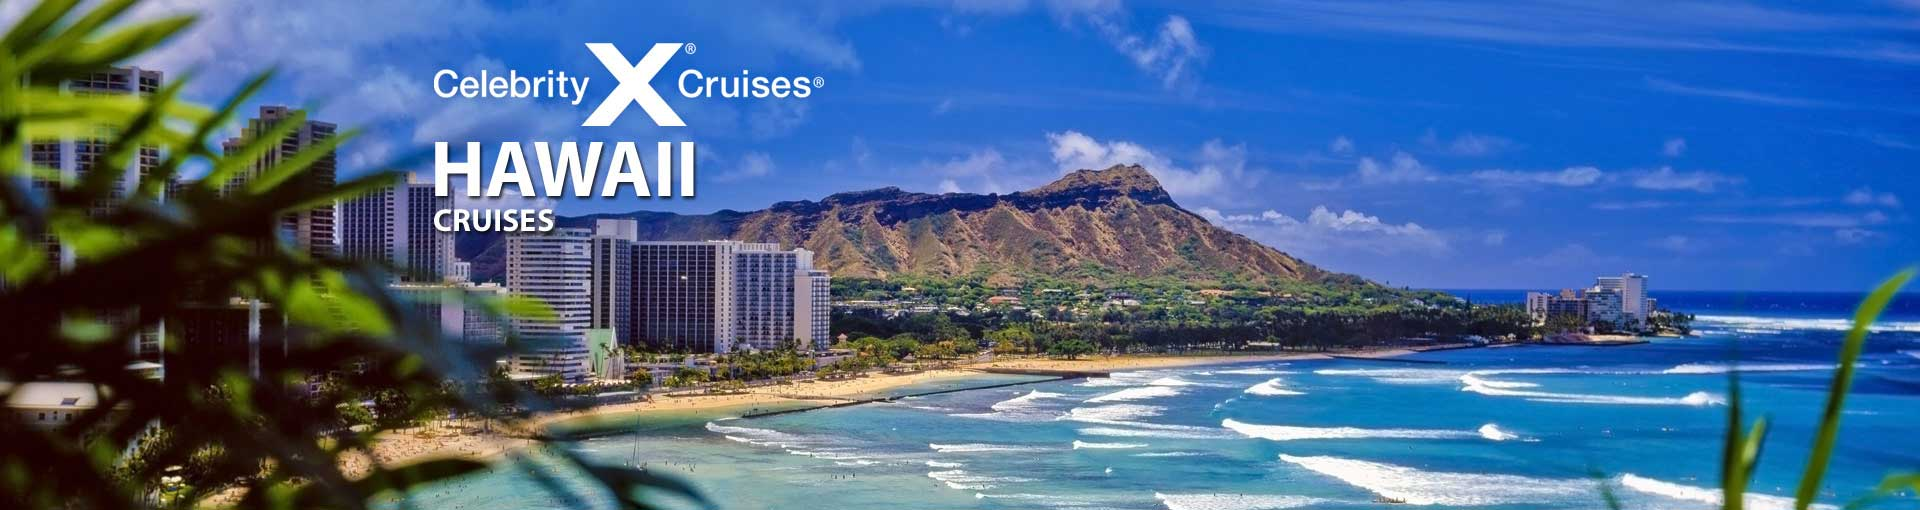 Hawaii Cruises: Hawaiian Cruise Packages & Deals ...